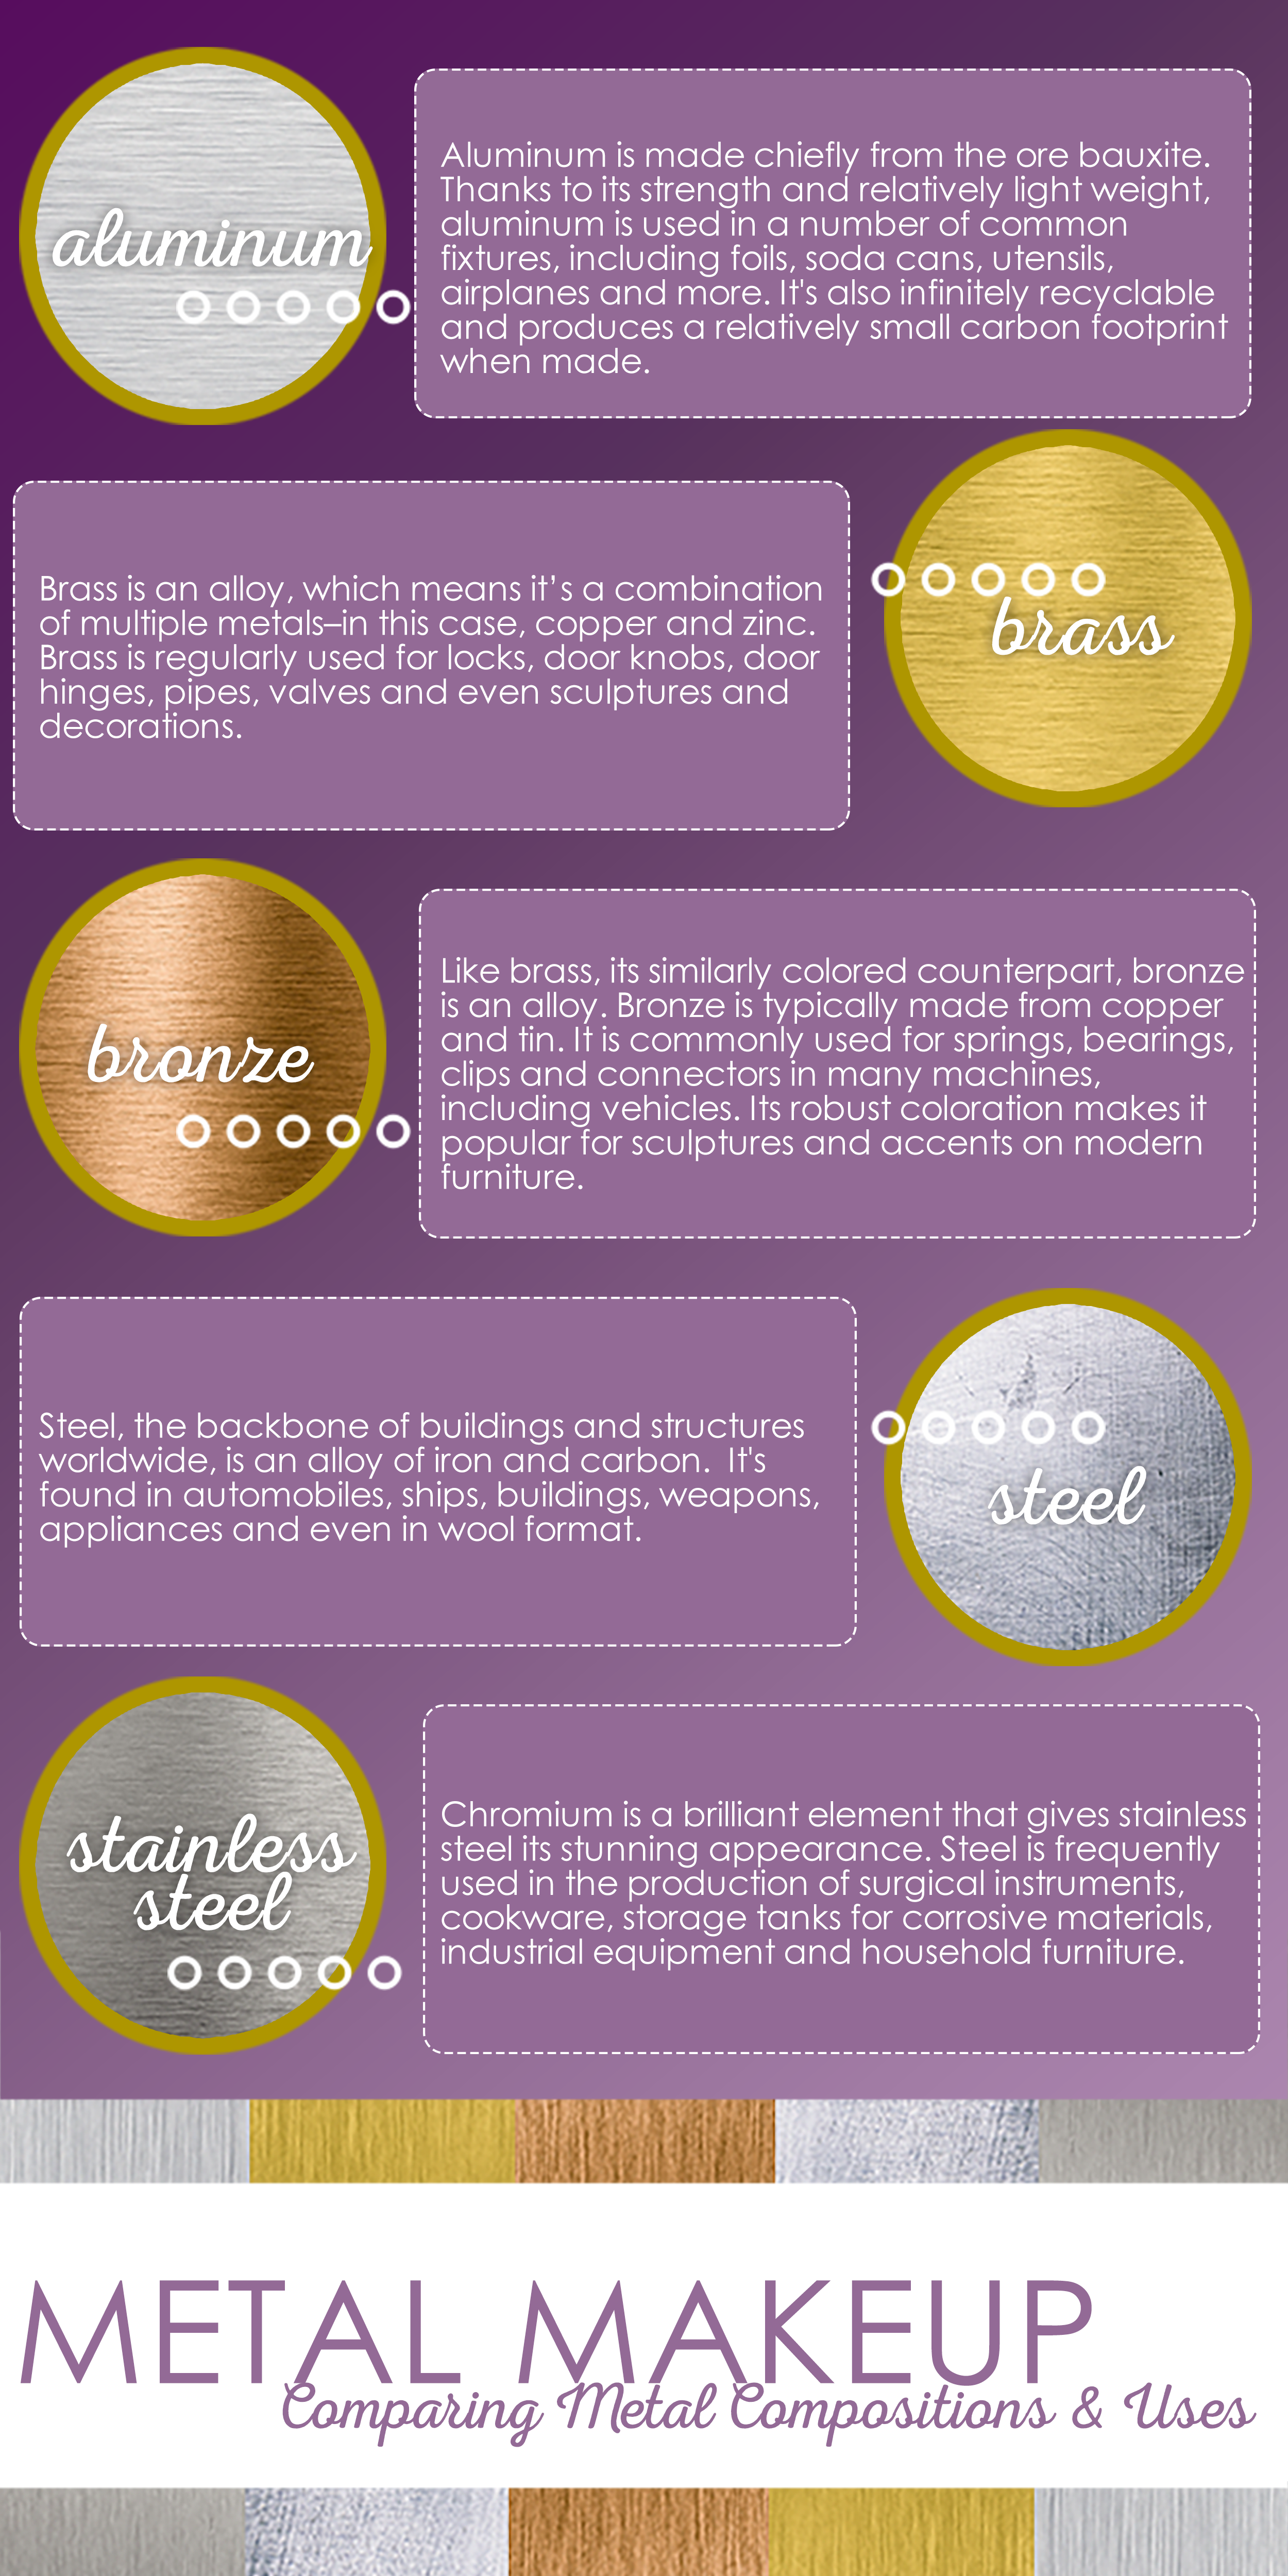 Infographic describing the make-up of aluminum, brass, bronze, steel, and stainless steel